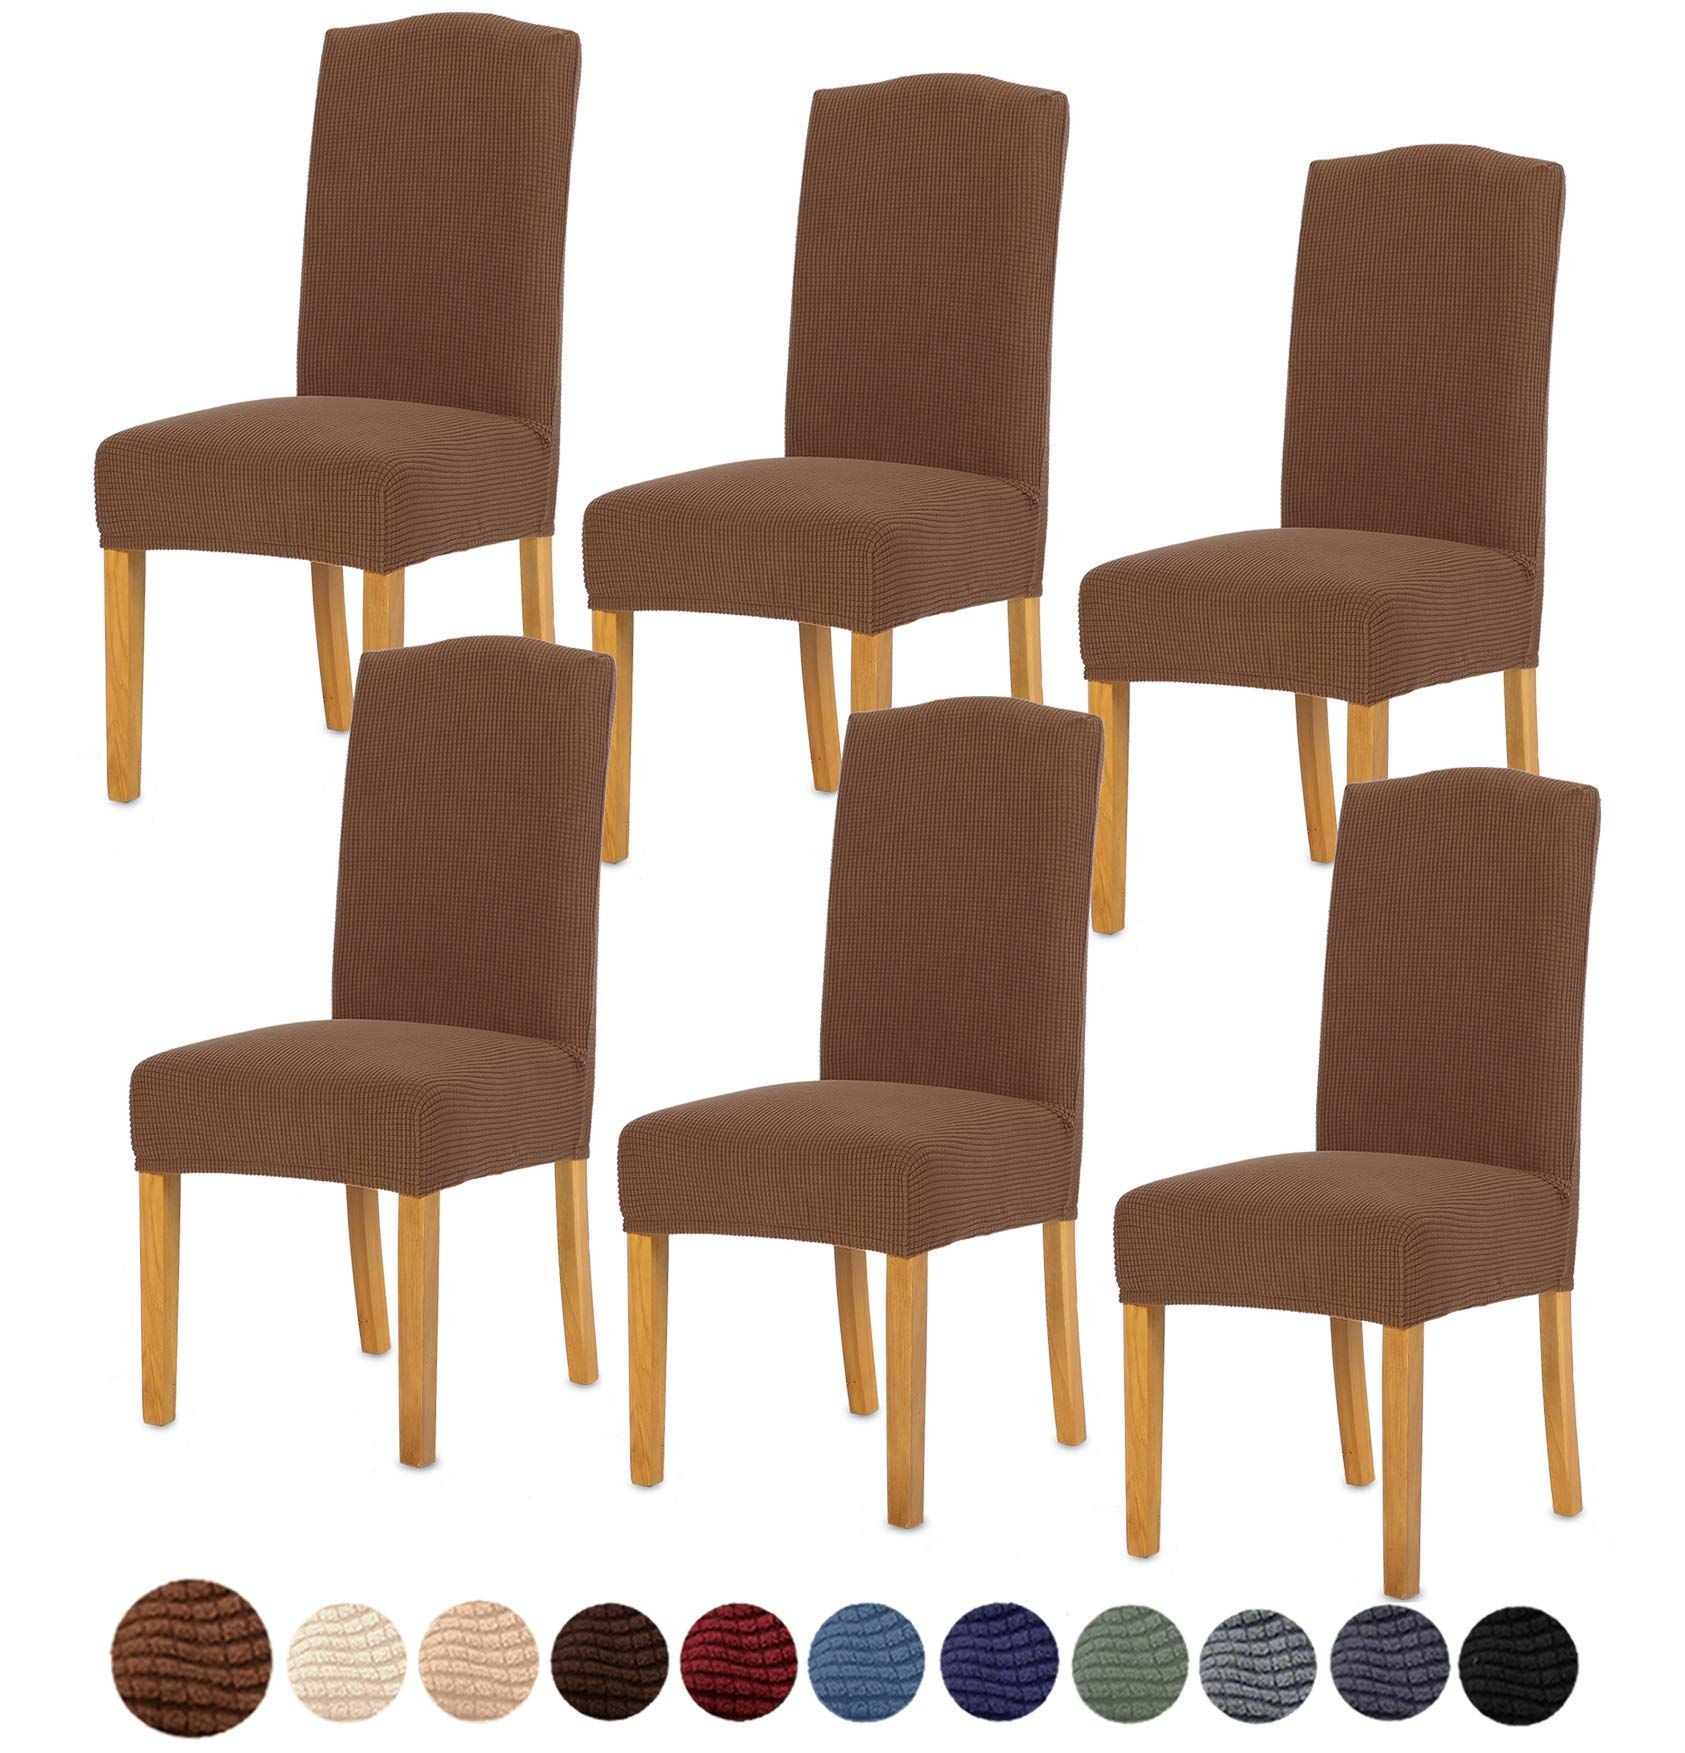 Tianshu Stretch Chair Cover For Home Decor Dining Chair Slipcover 6 Pack Coffee In 2020